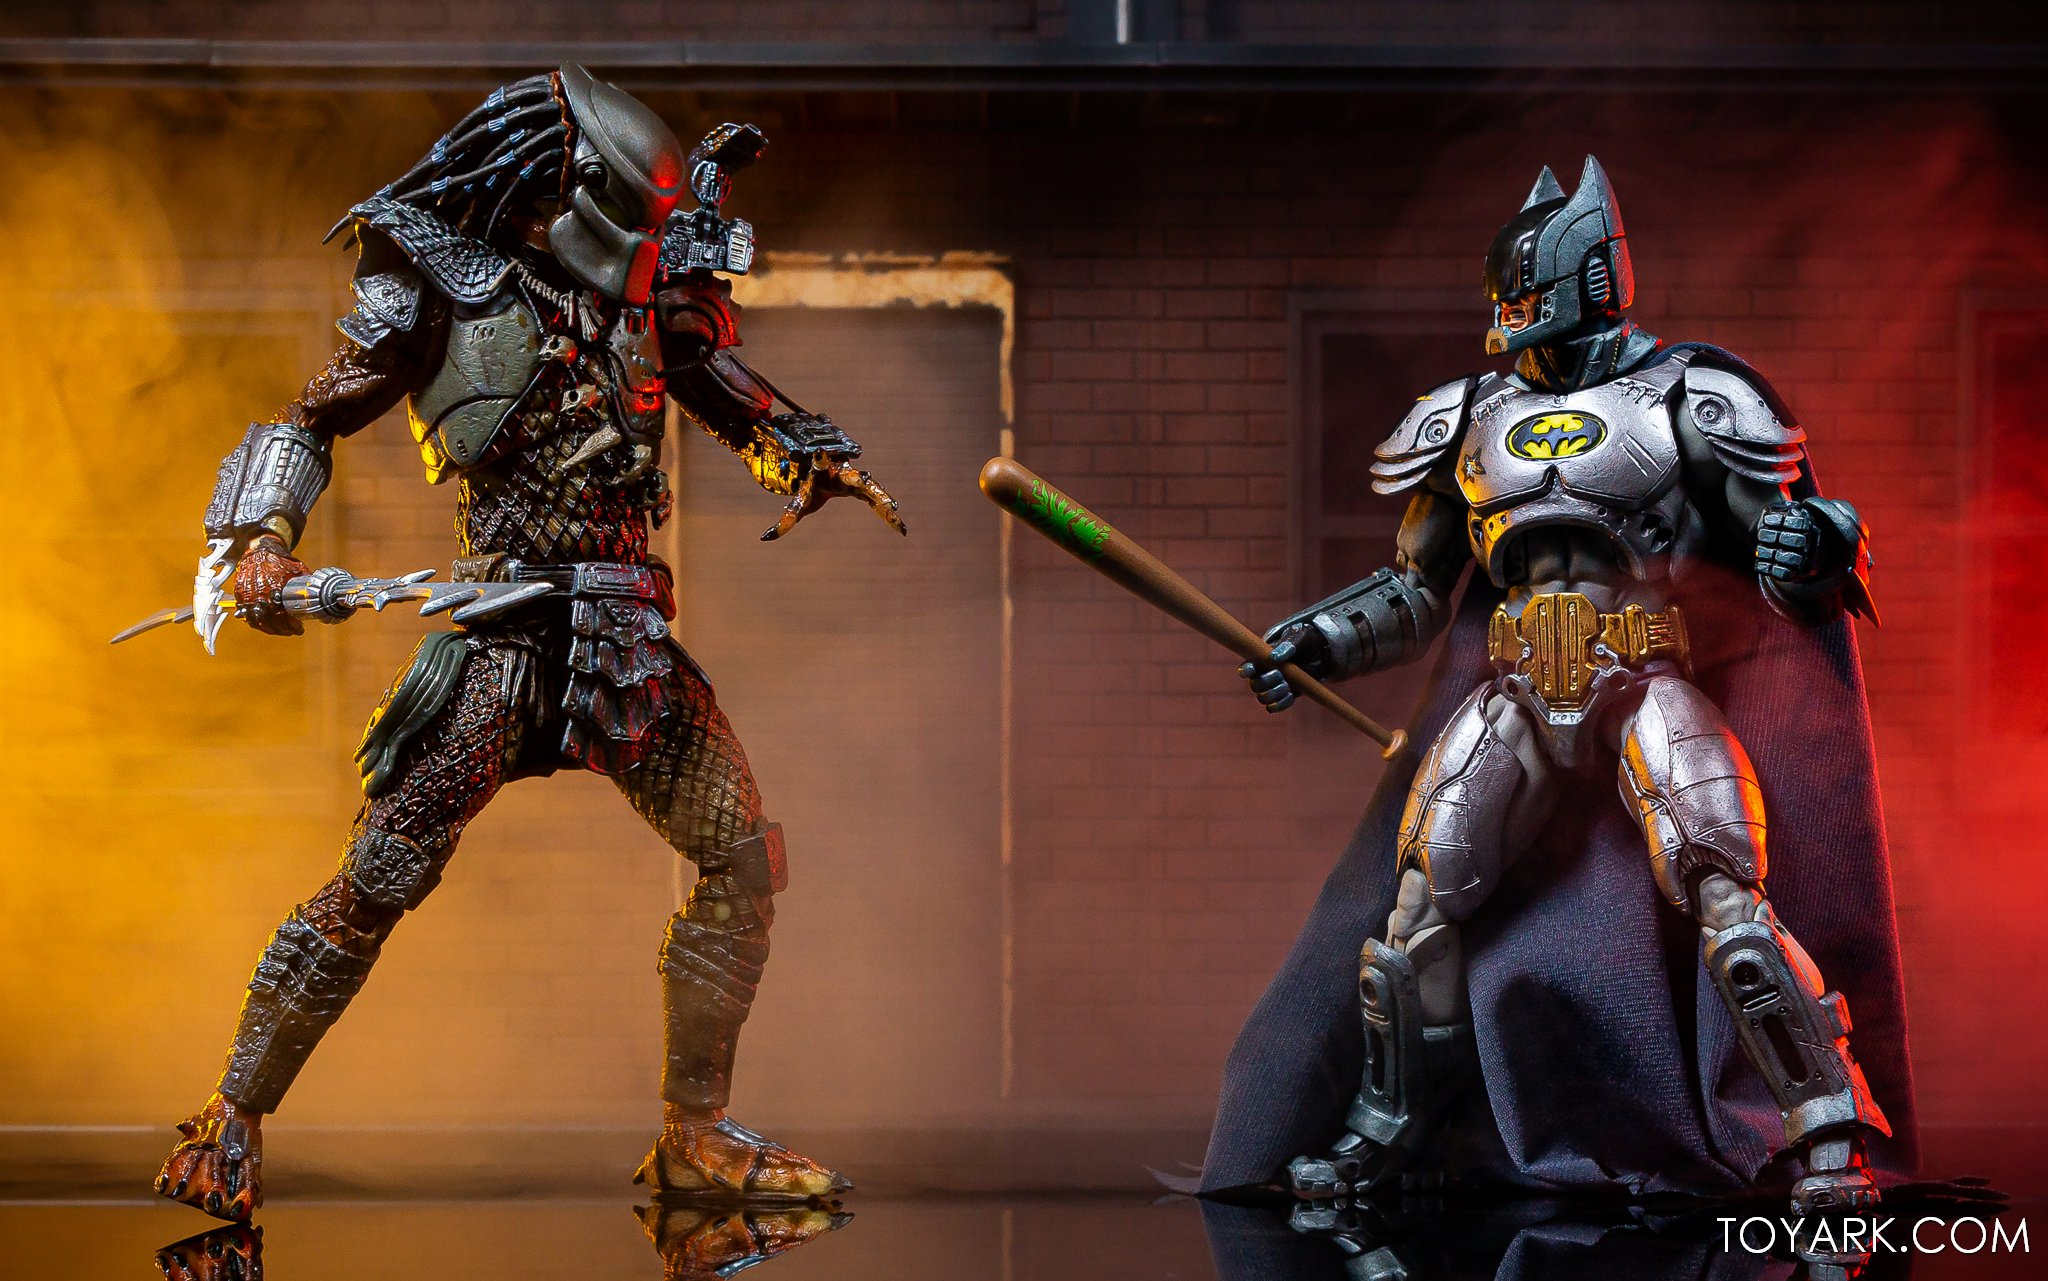 https://news.toyark.com/wp-content/uploads/sites/4/2019/09/Batman-vs-Predator-Set-041.jpg